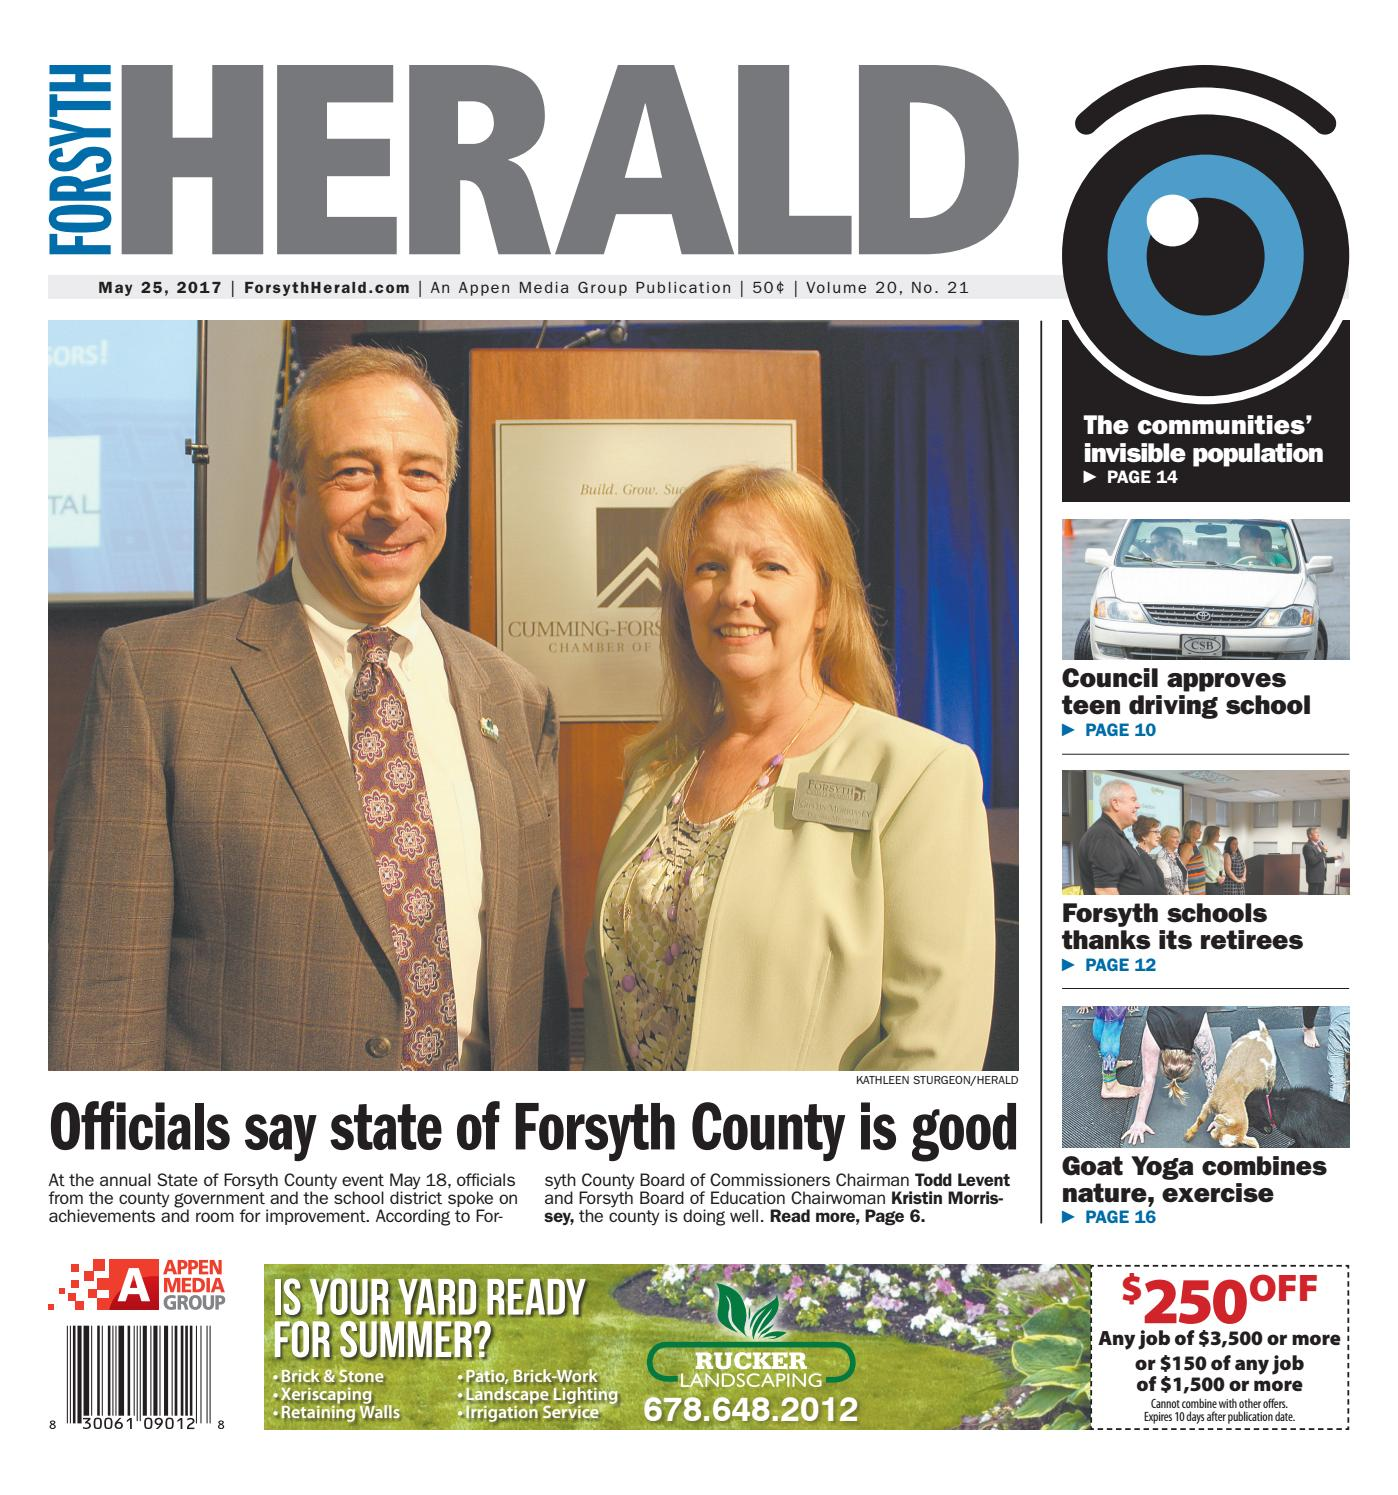 Forsyth Herald - May 25, 2017 by Appen Media Group - issuu